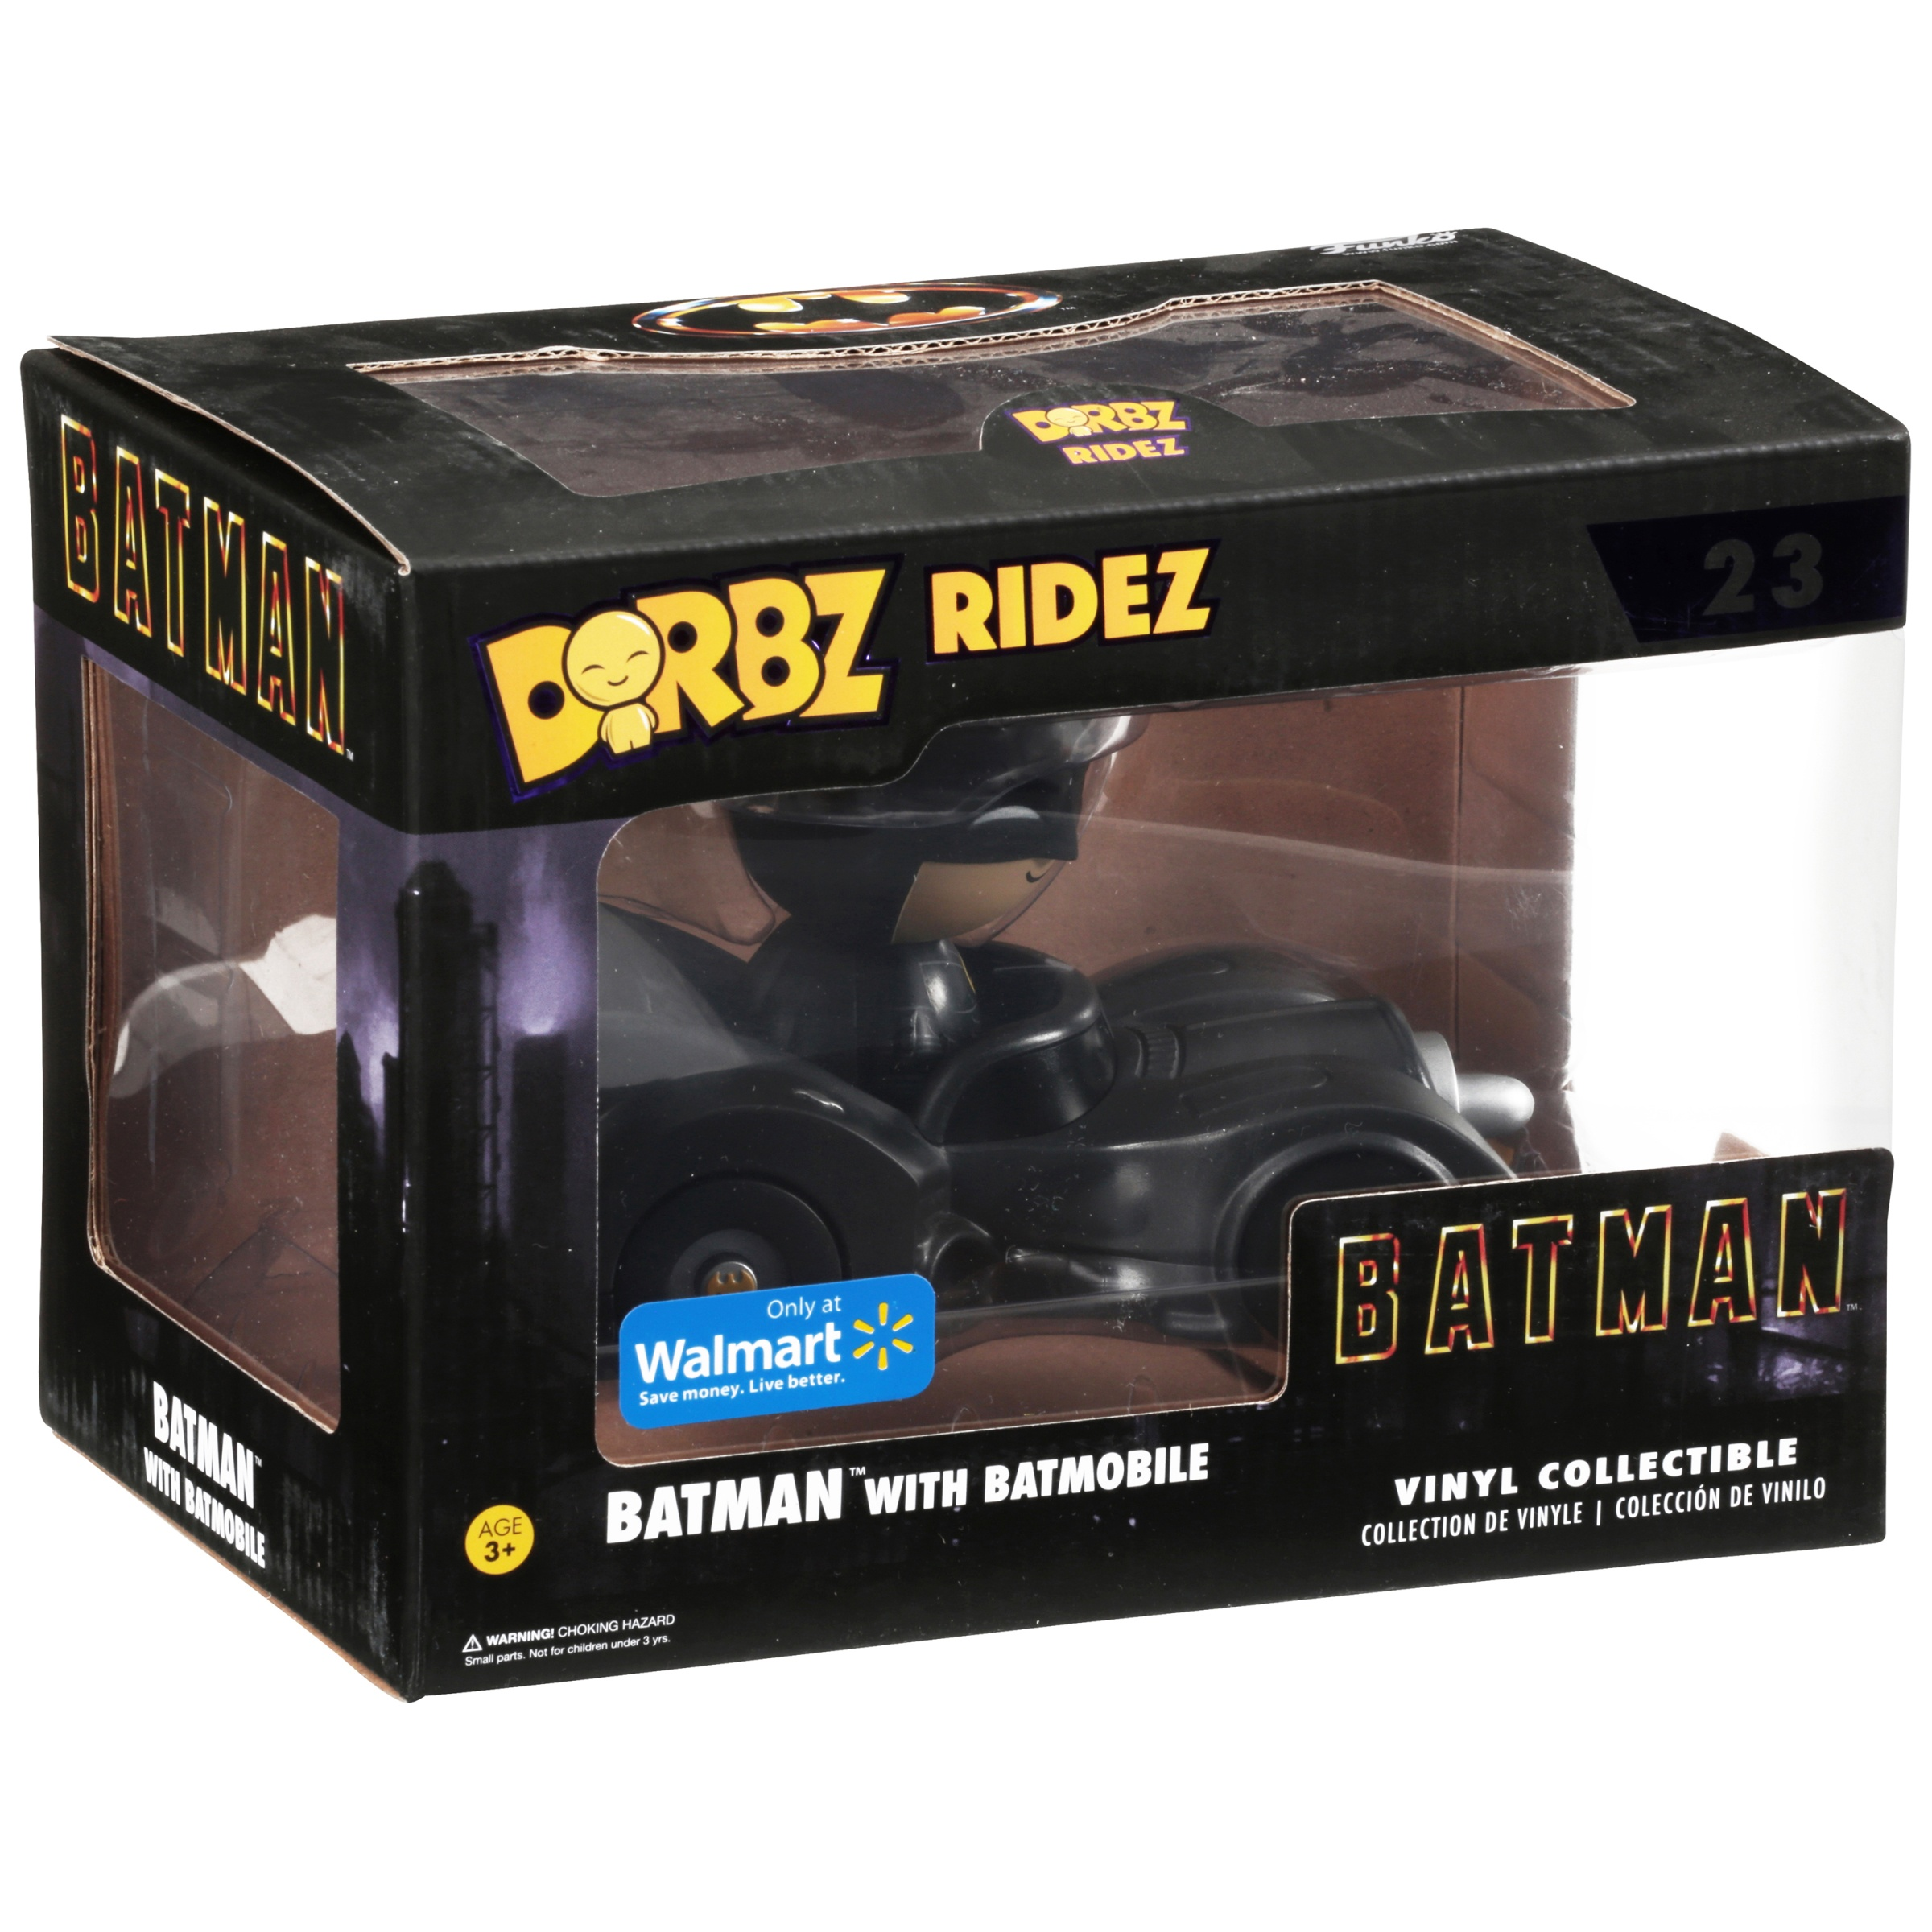 Funko Dorbz Ridez: DC Heroes, Batman with Batmobile Walmart Exclusive